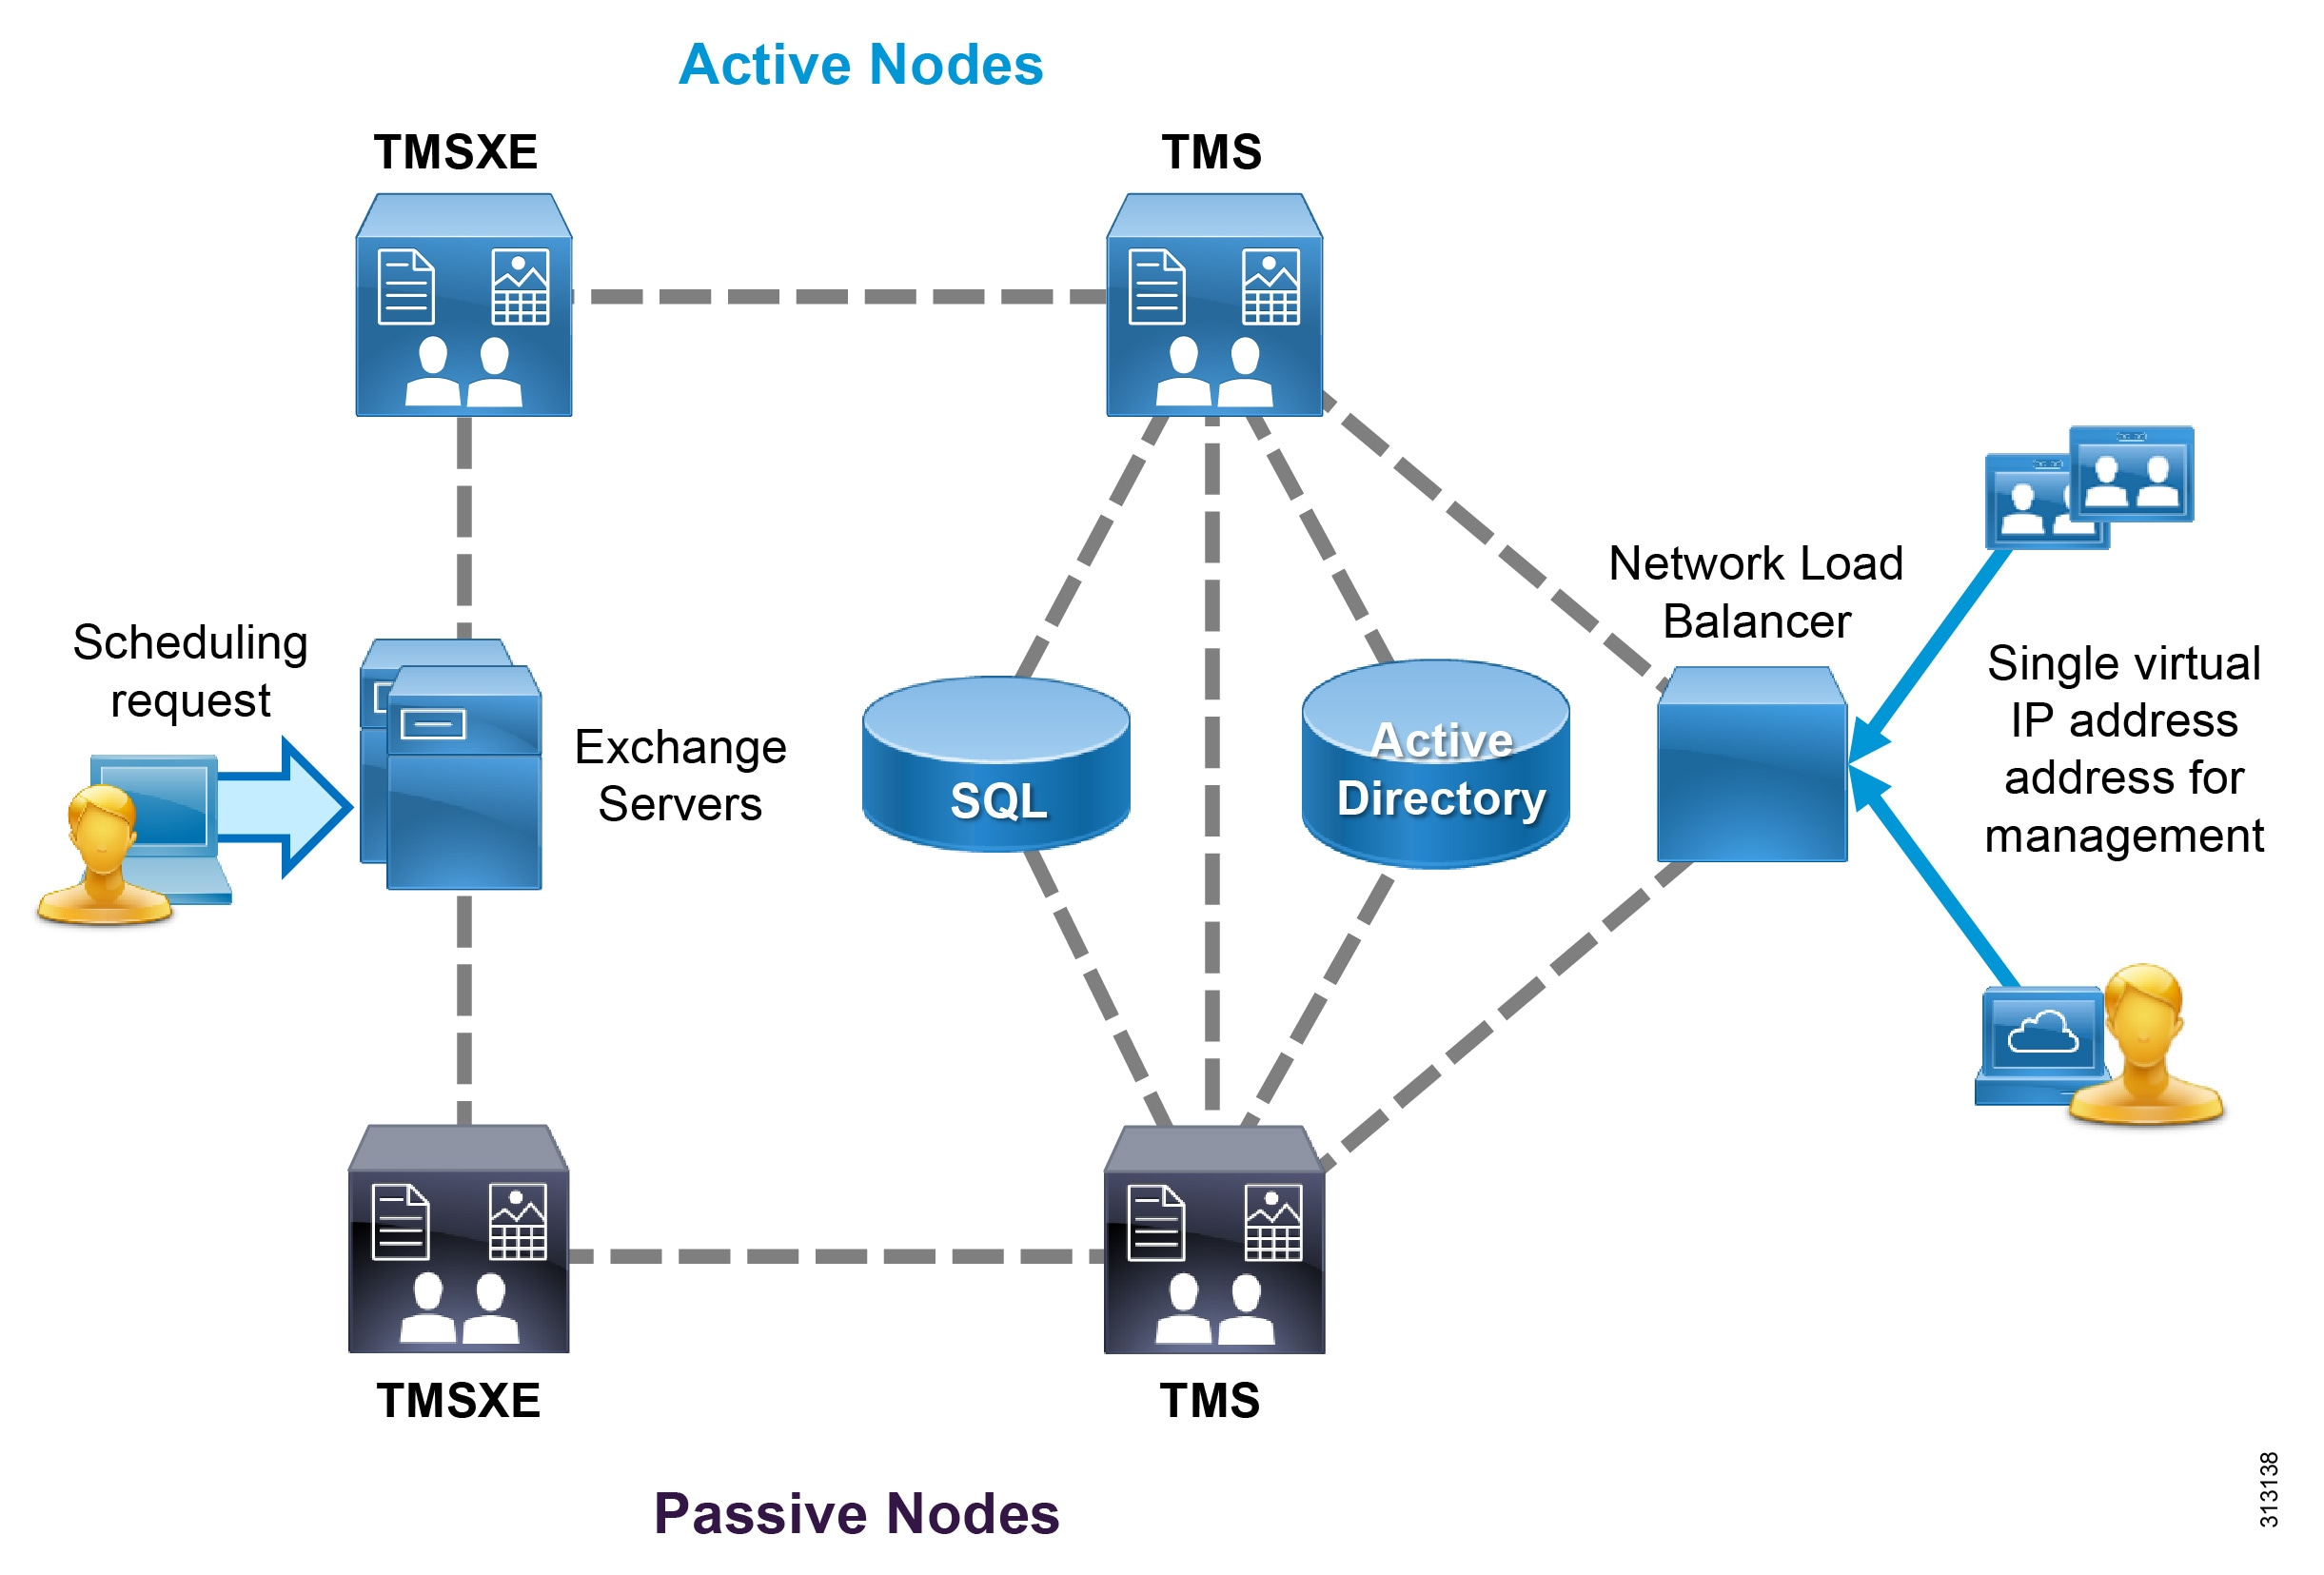 Preferred Architecture For Cisco Collaboration 120 On Premises Network Diagram Internetbased Servers Scenario 4 With Intranet Deploy The Microsoft Sql Database Separately From Tms Server Instance Of May Be Shared By Other Applications Within Organization